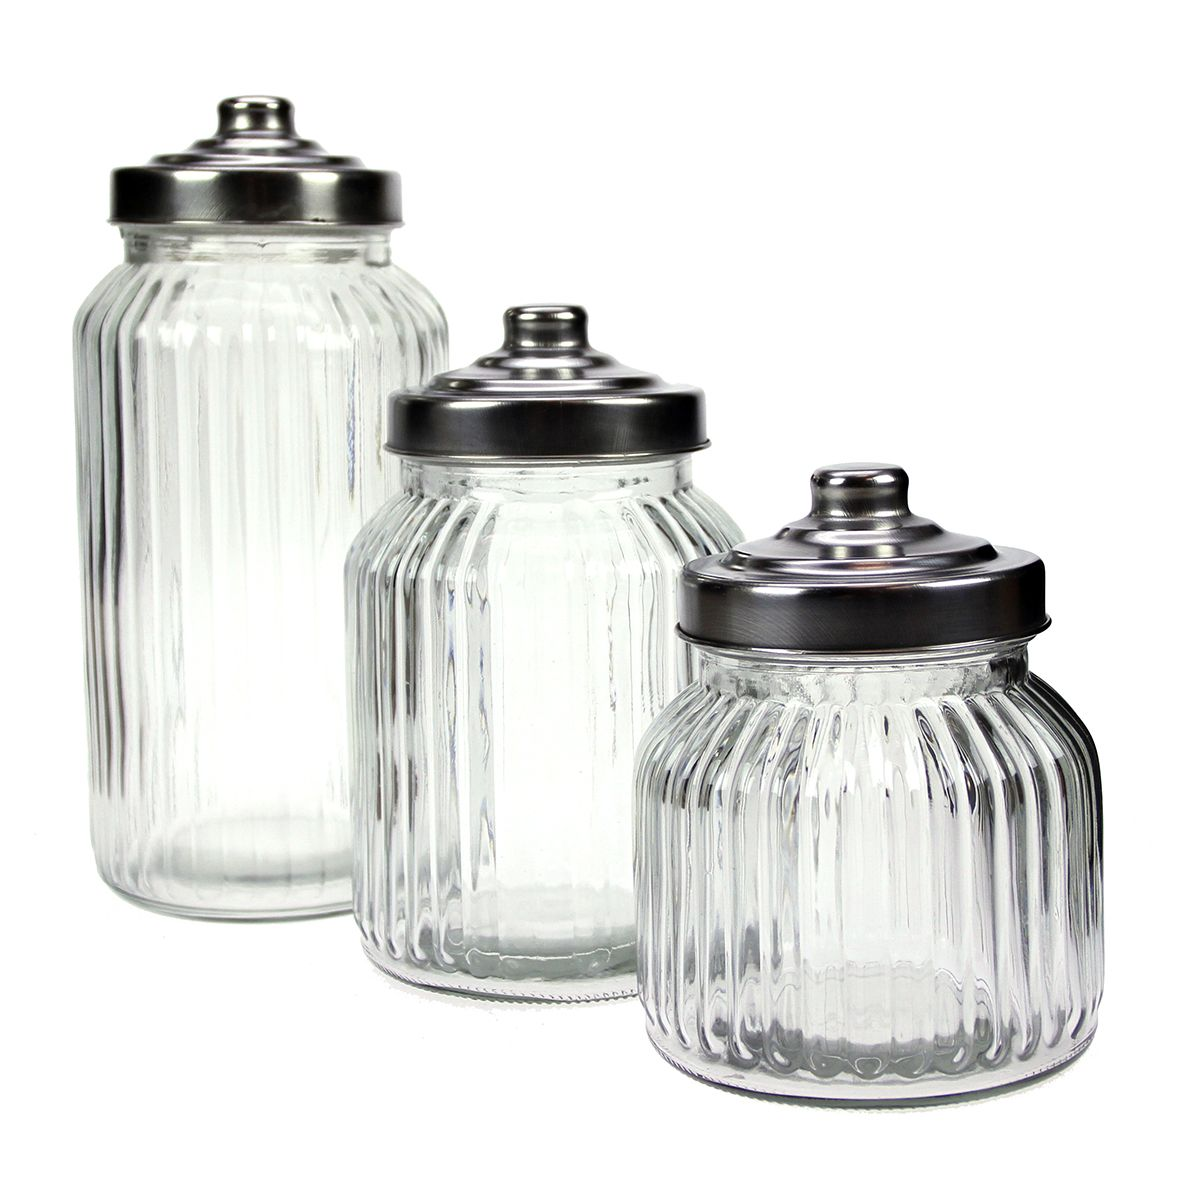 Candy Jars, Holders, Scoops & Centerpieces category image